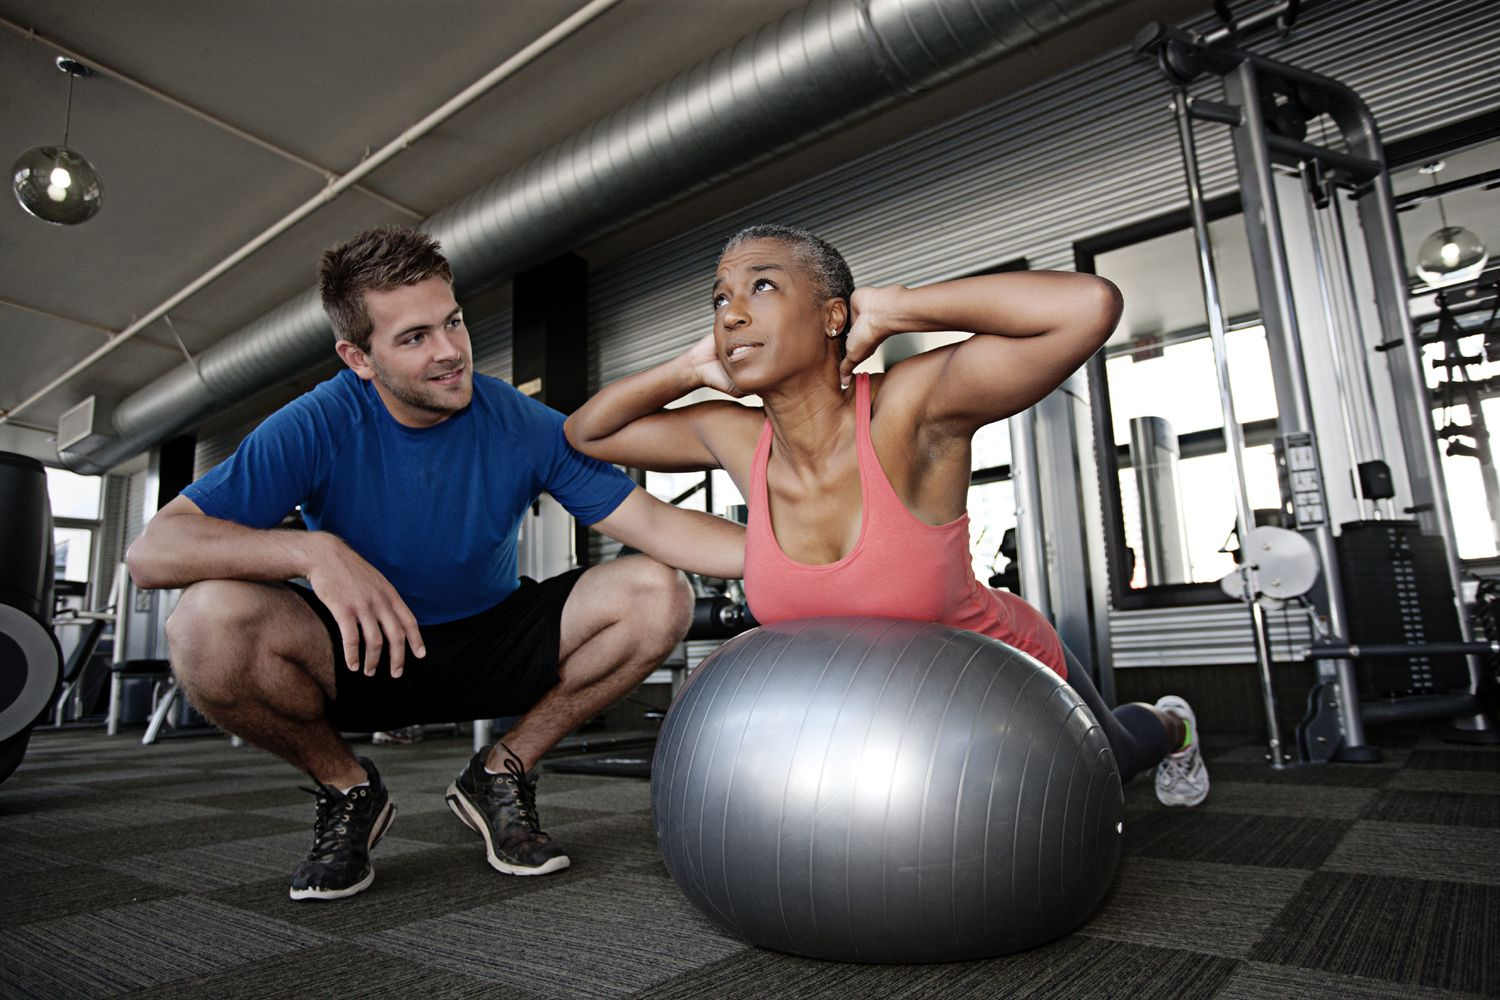 e4527eda3fe 10 Reasons to Consider Hiring a Personal Trainer